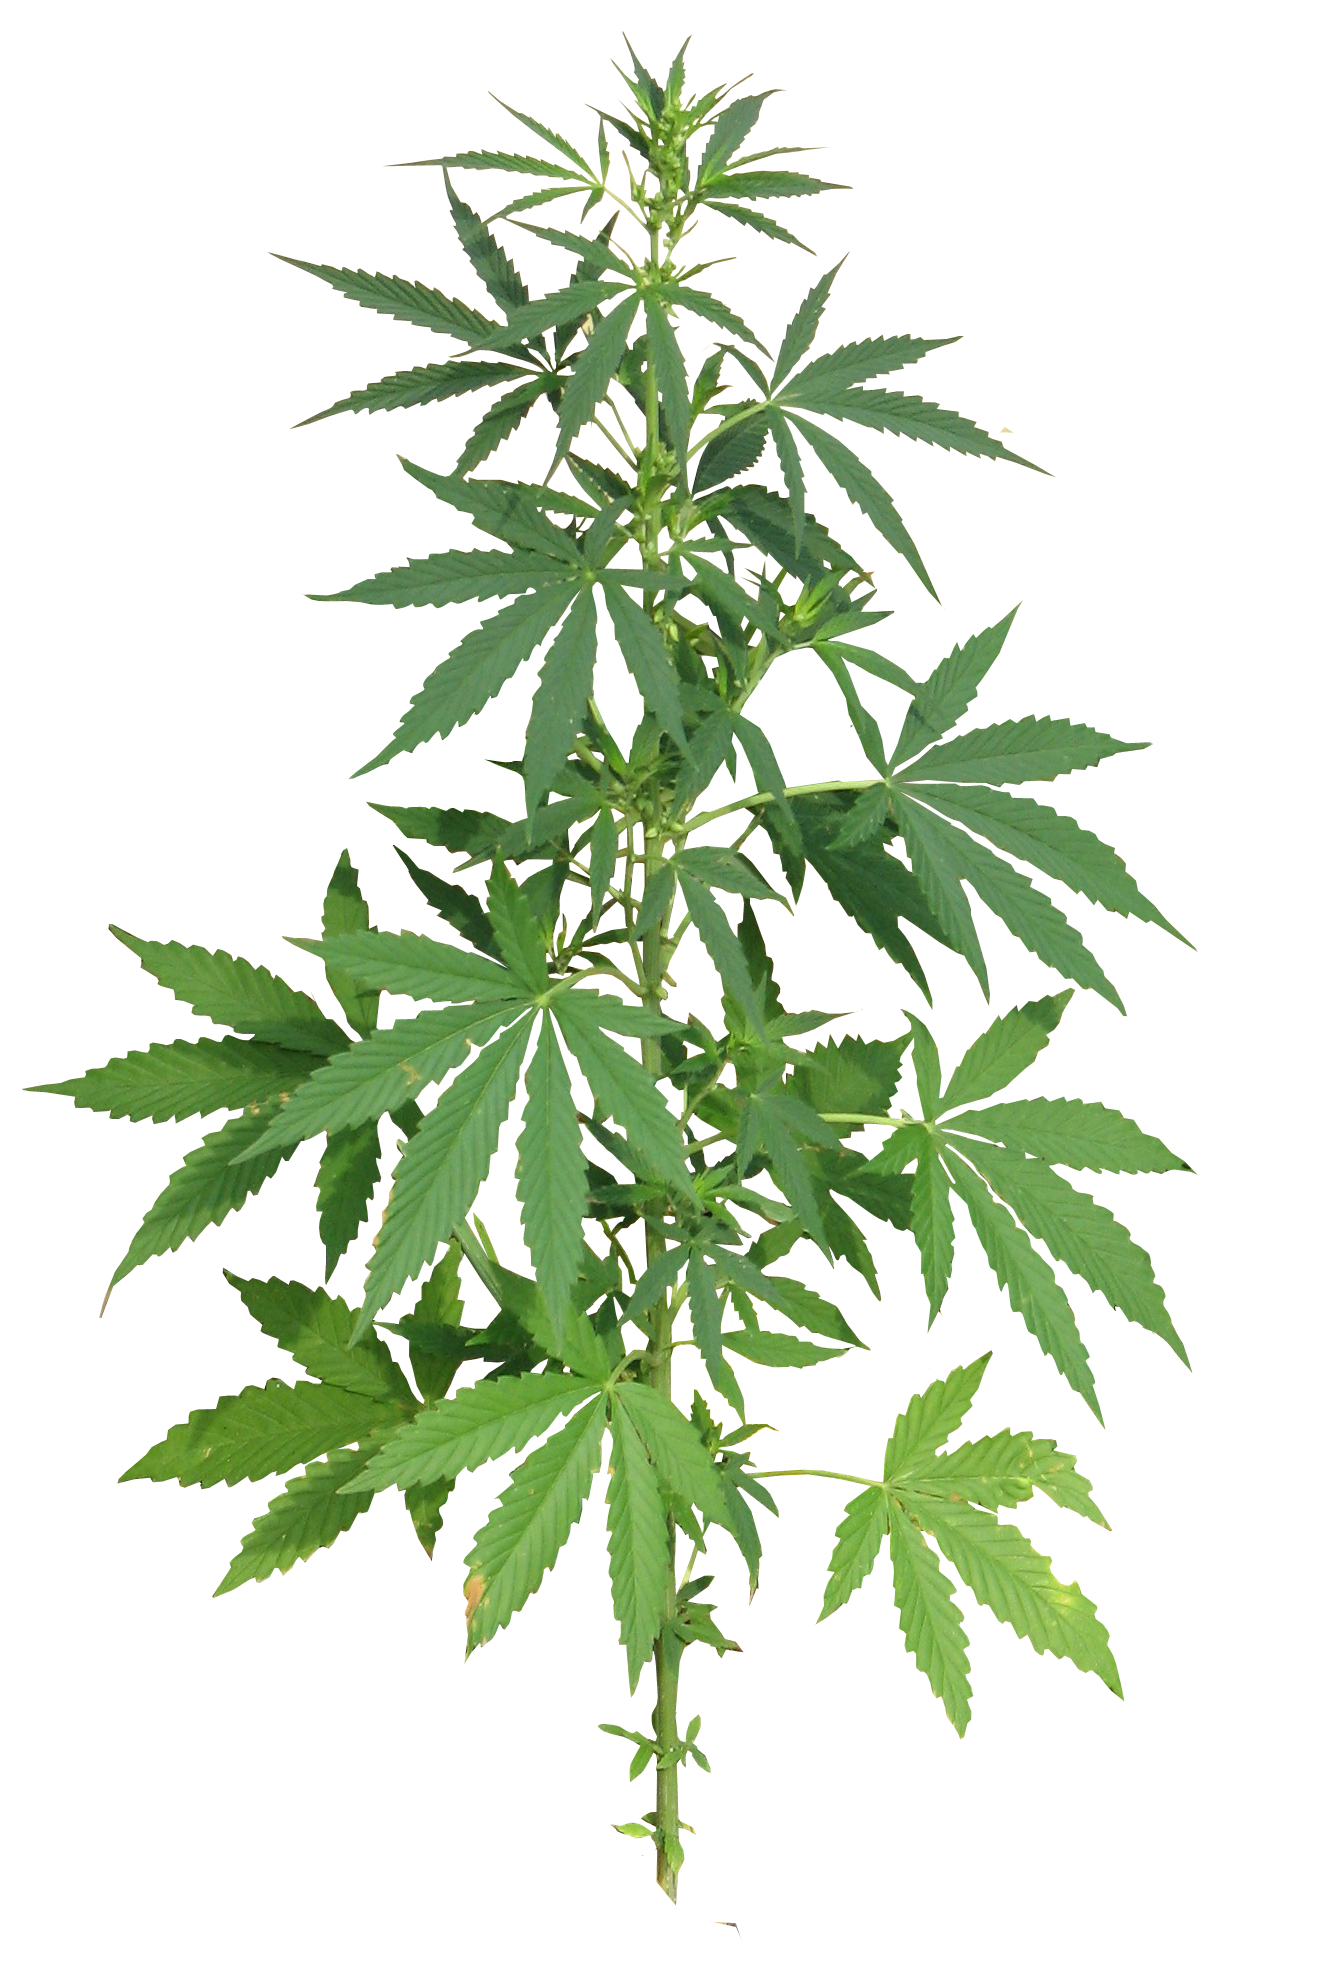 Weed flower clipart image royalty free download Cannabis PNG Image - PurePNG | Free transparent CC0 PNG Image Library image royalty free download